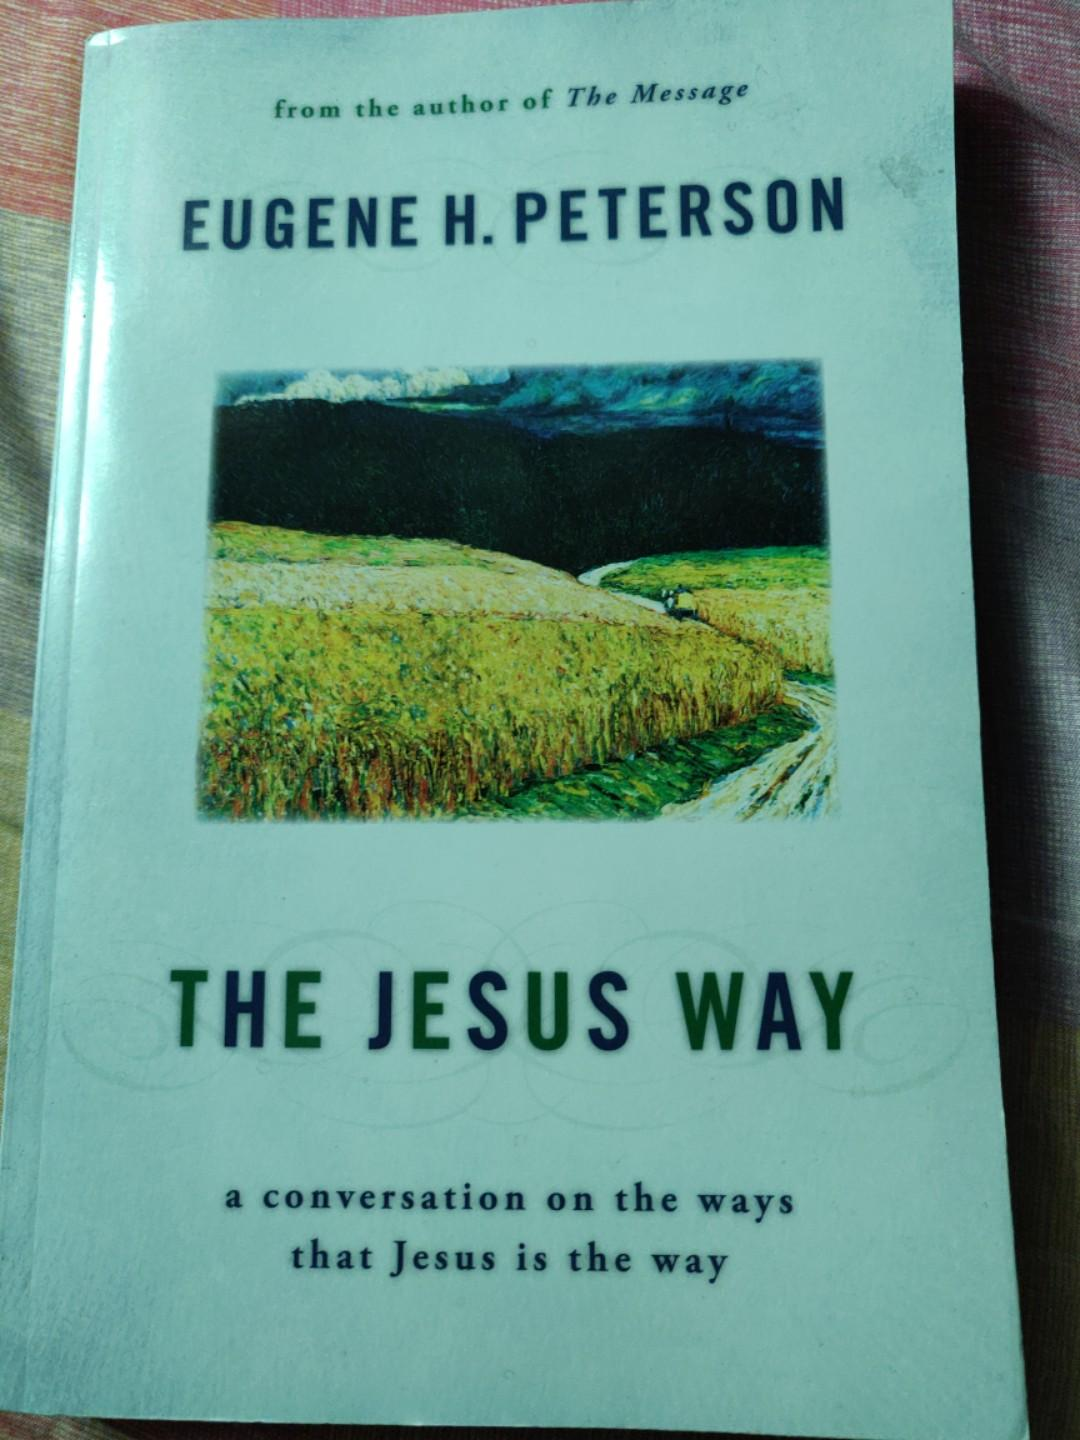 The Jesus Way (Theology, bible, religion, christianity, biblical studies)